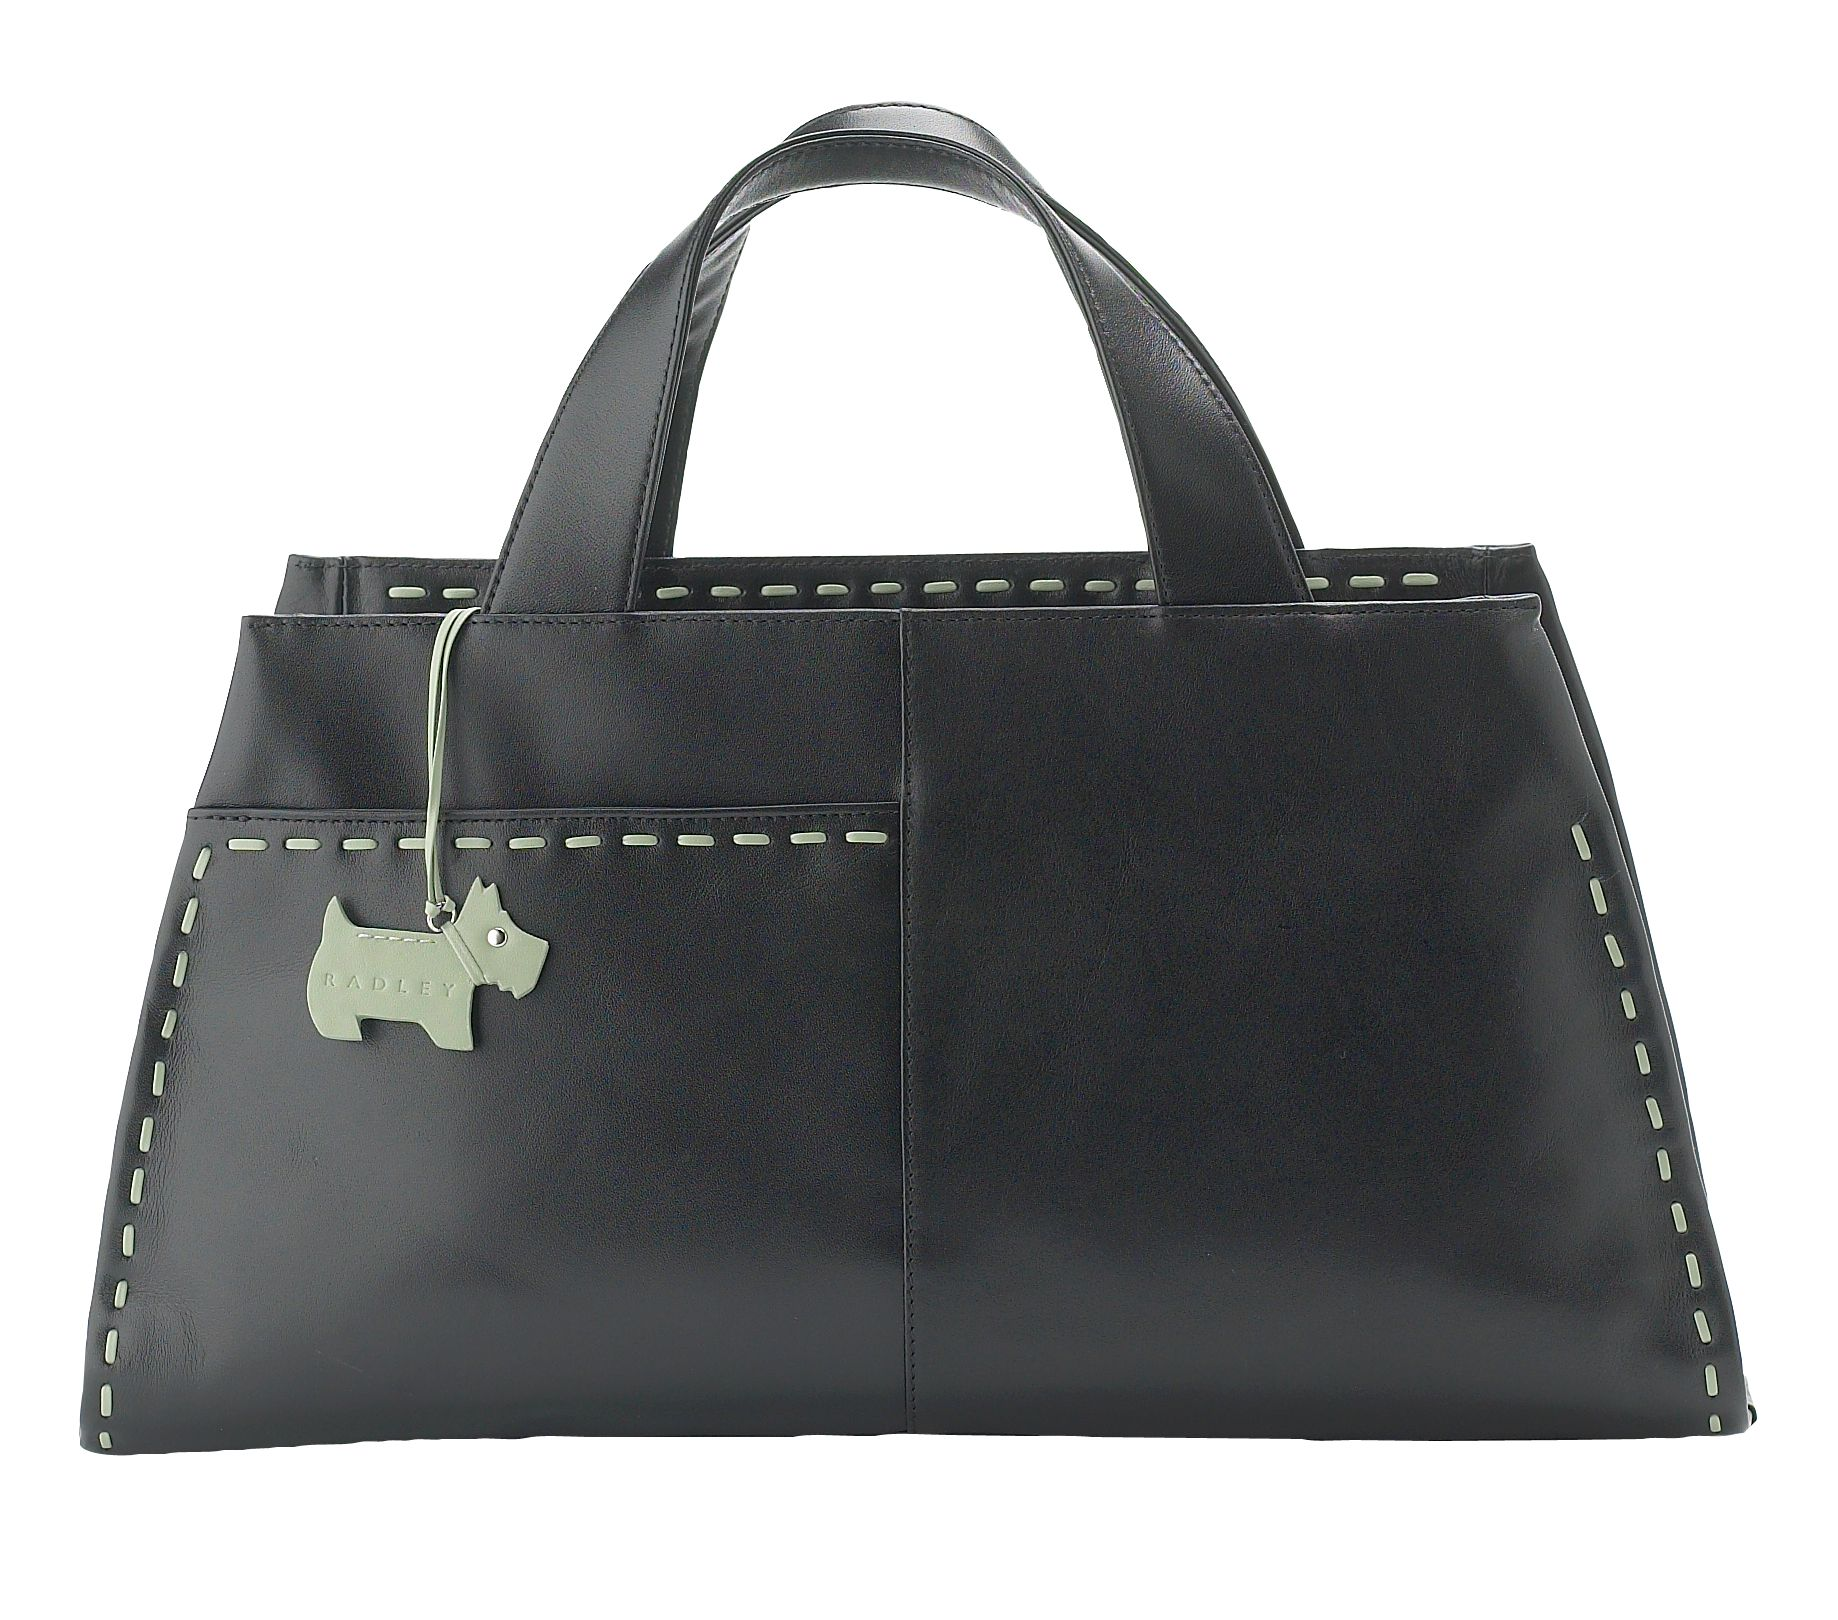 Running Stitch large leather hand held tote